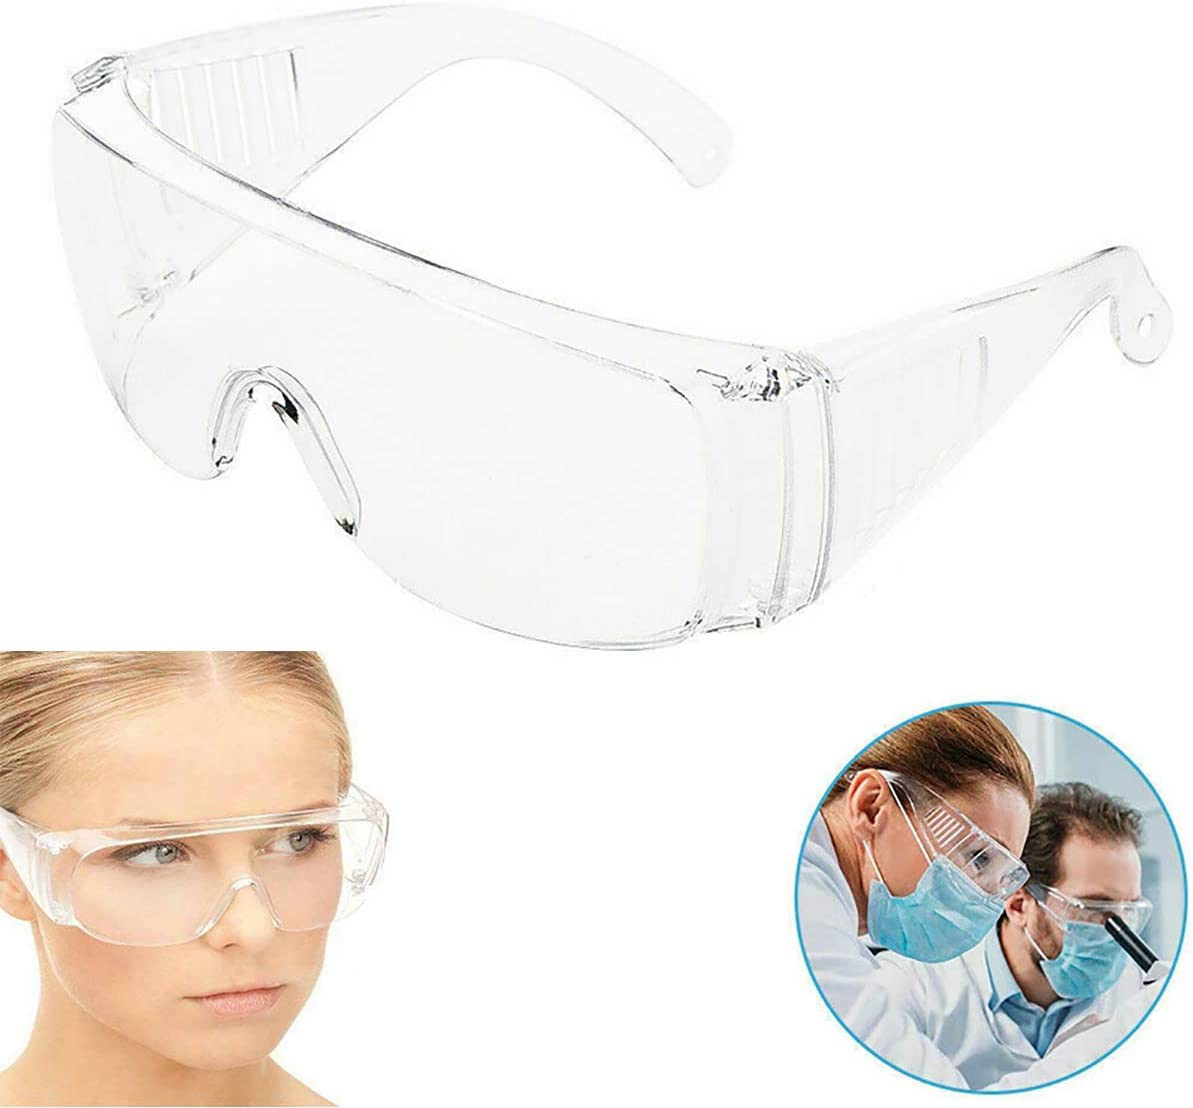 Details about  /2X Clear Anti Safety Goggles Glasses Eye Protection Work Lab Dust Clear Lens